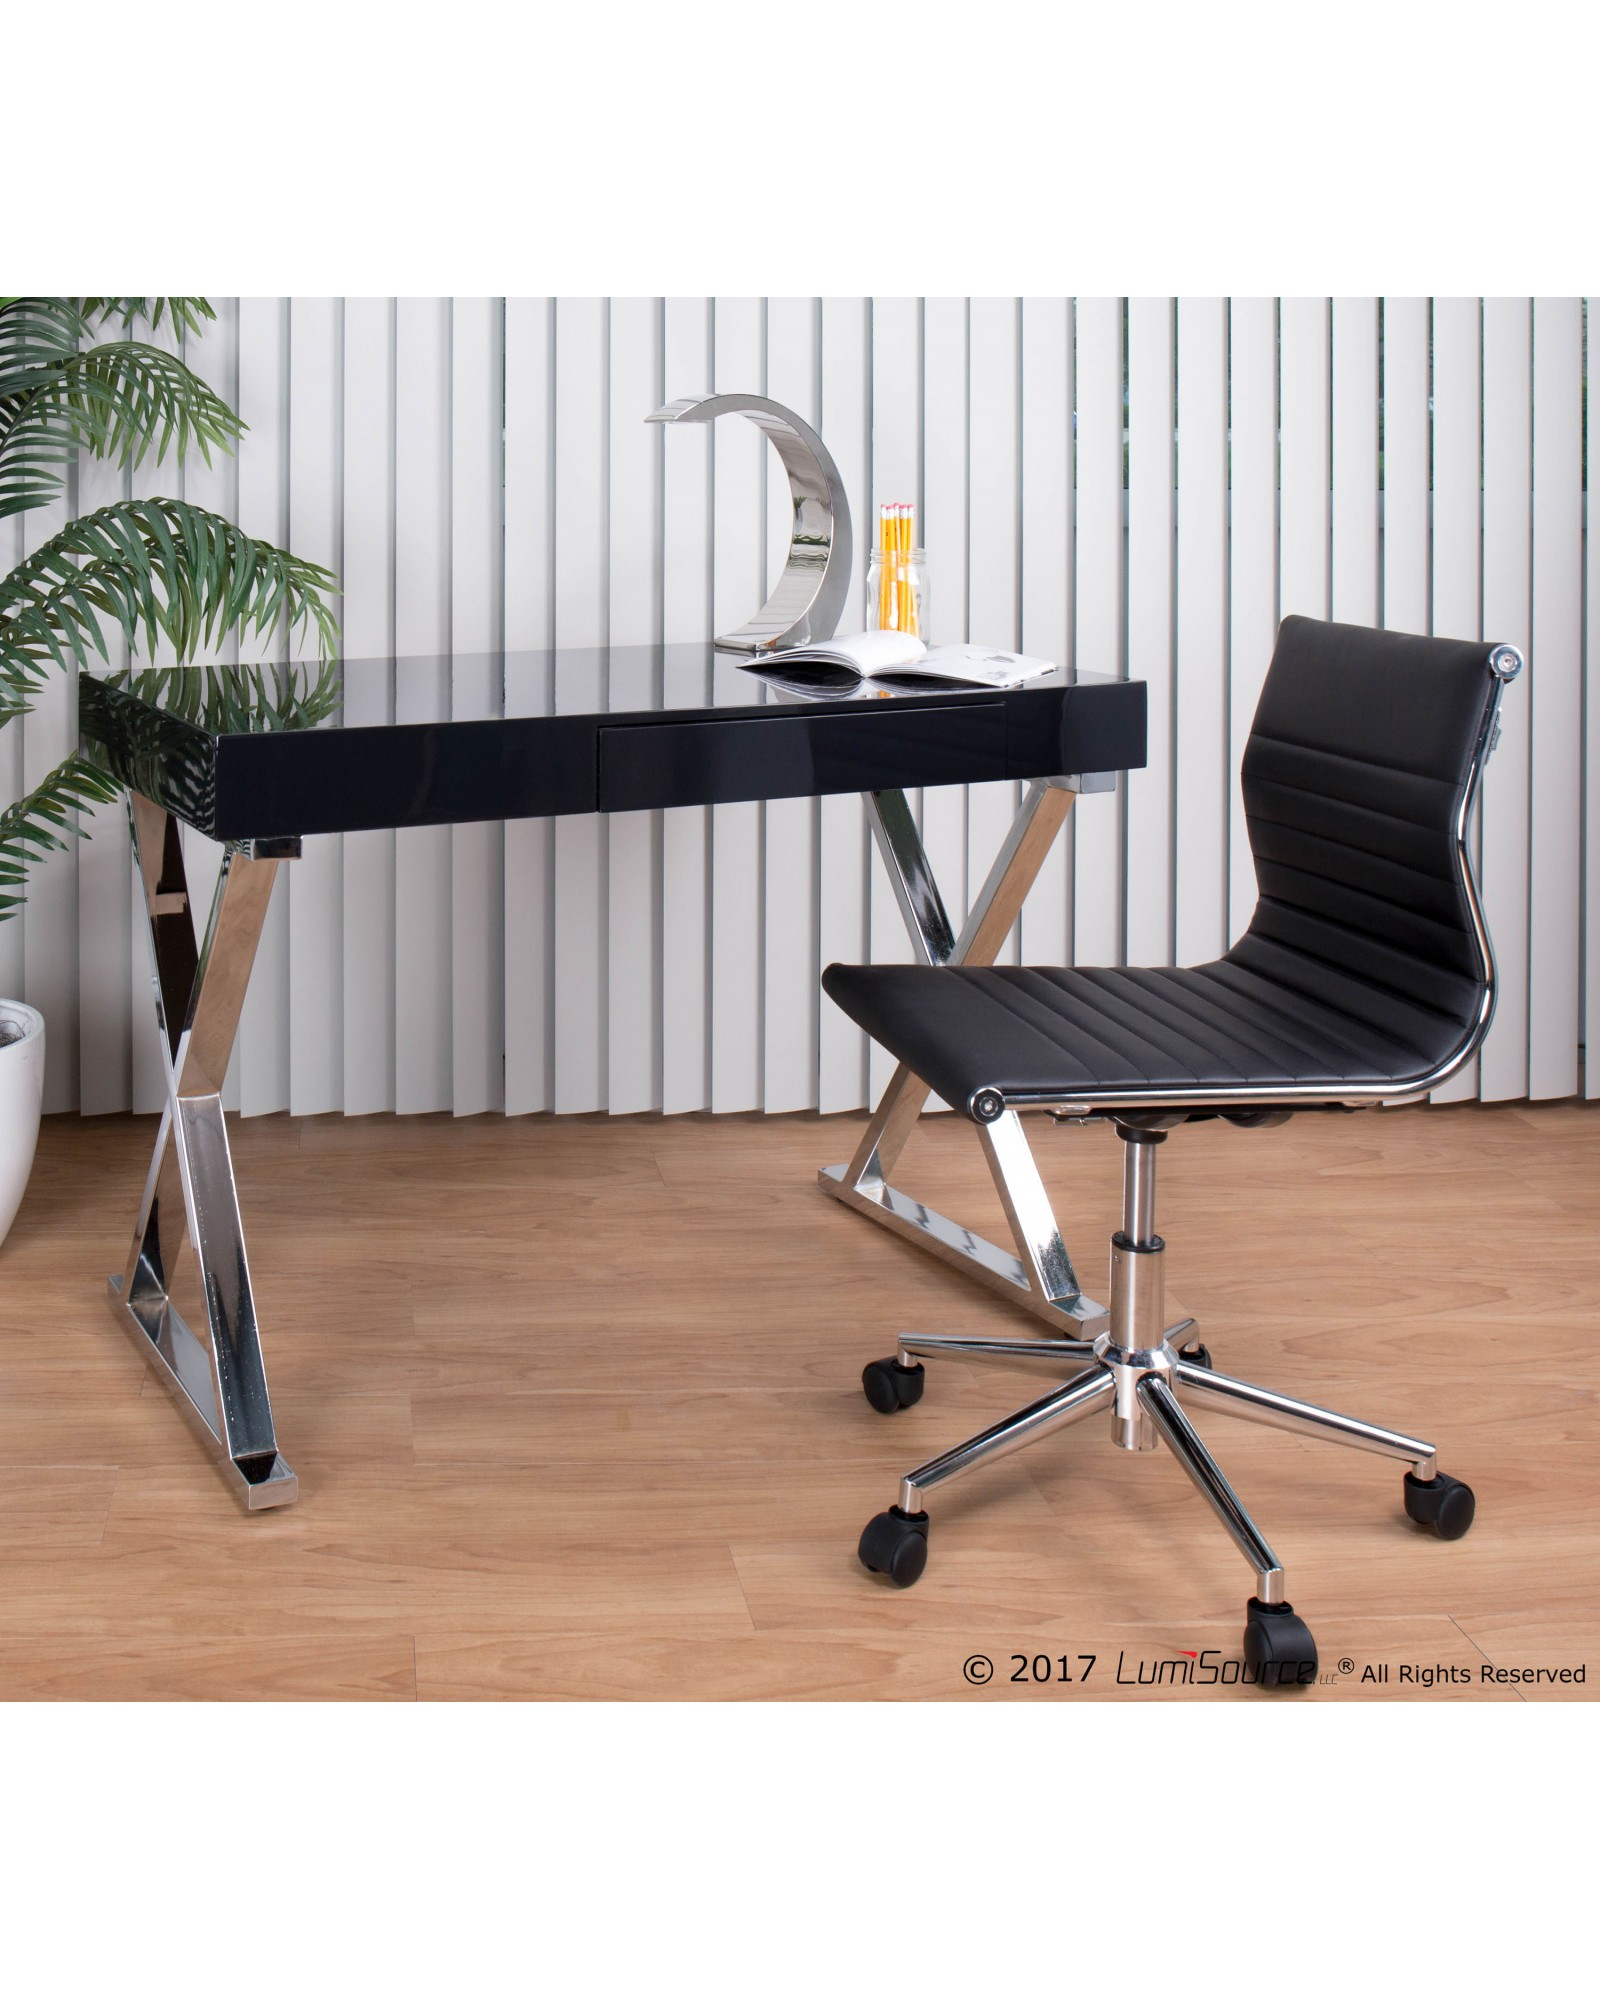 modern desks table furniture office for contemporary desk ideas plans decor design home at